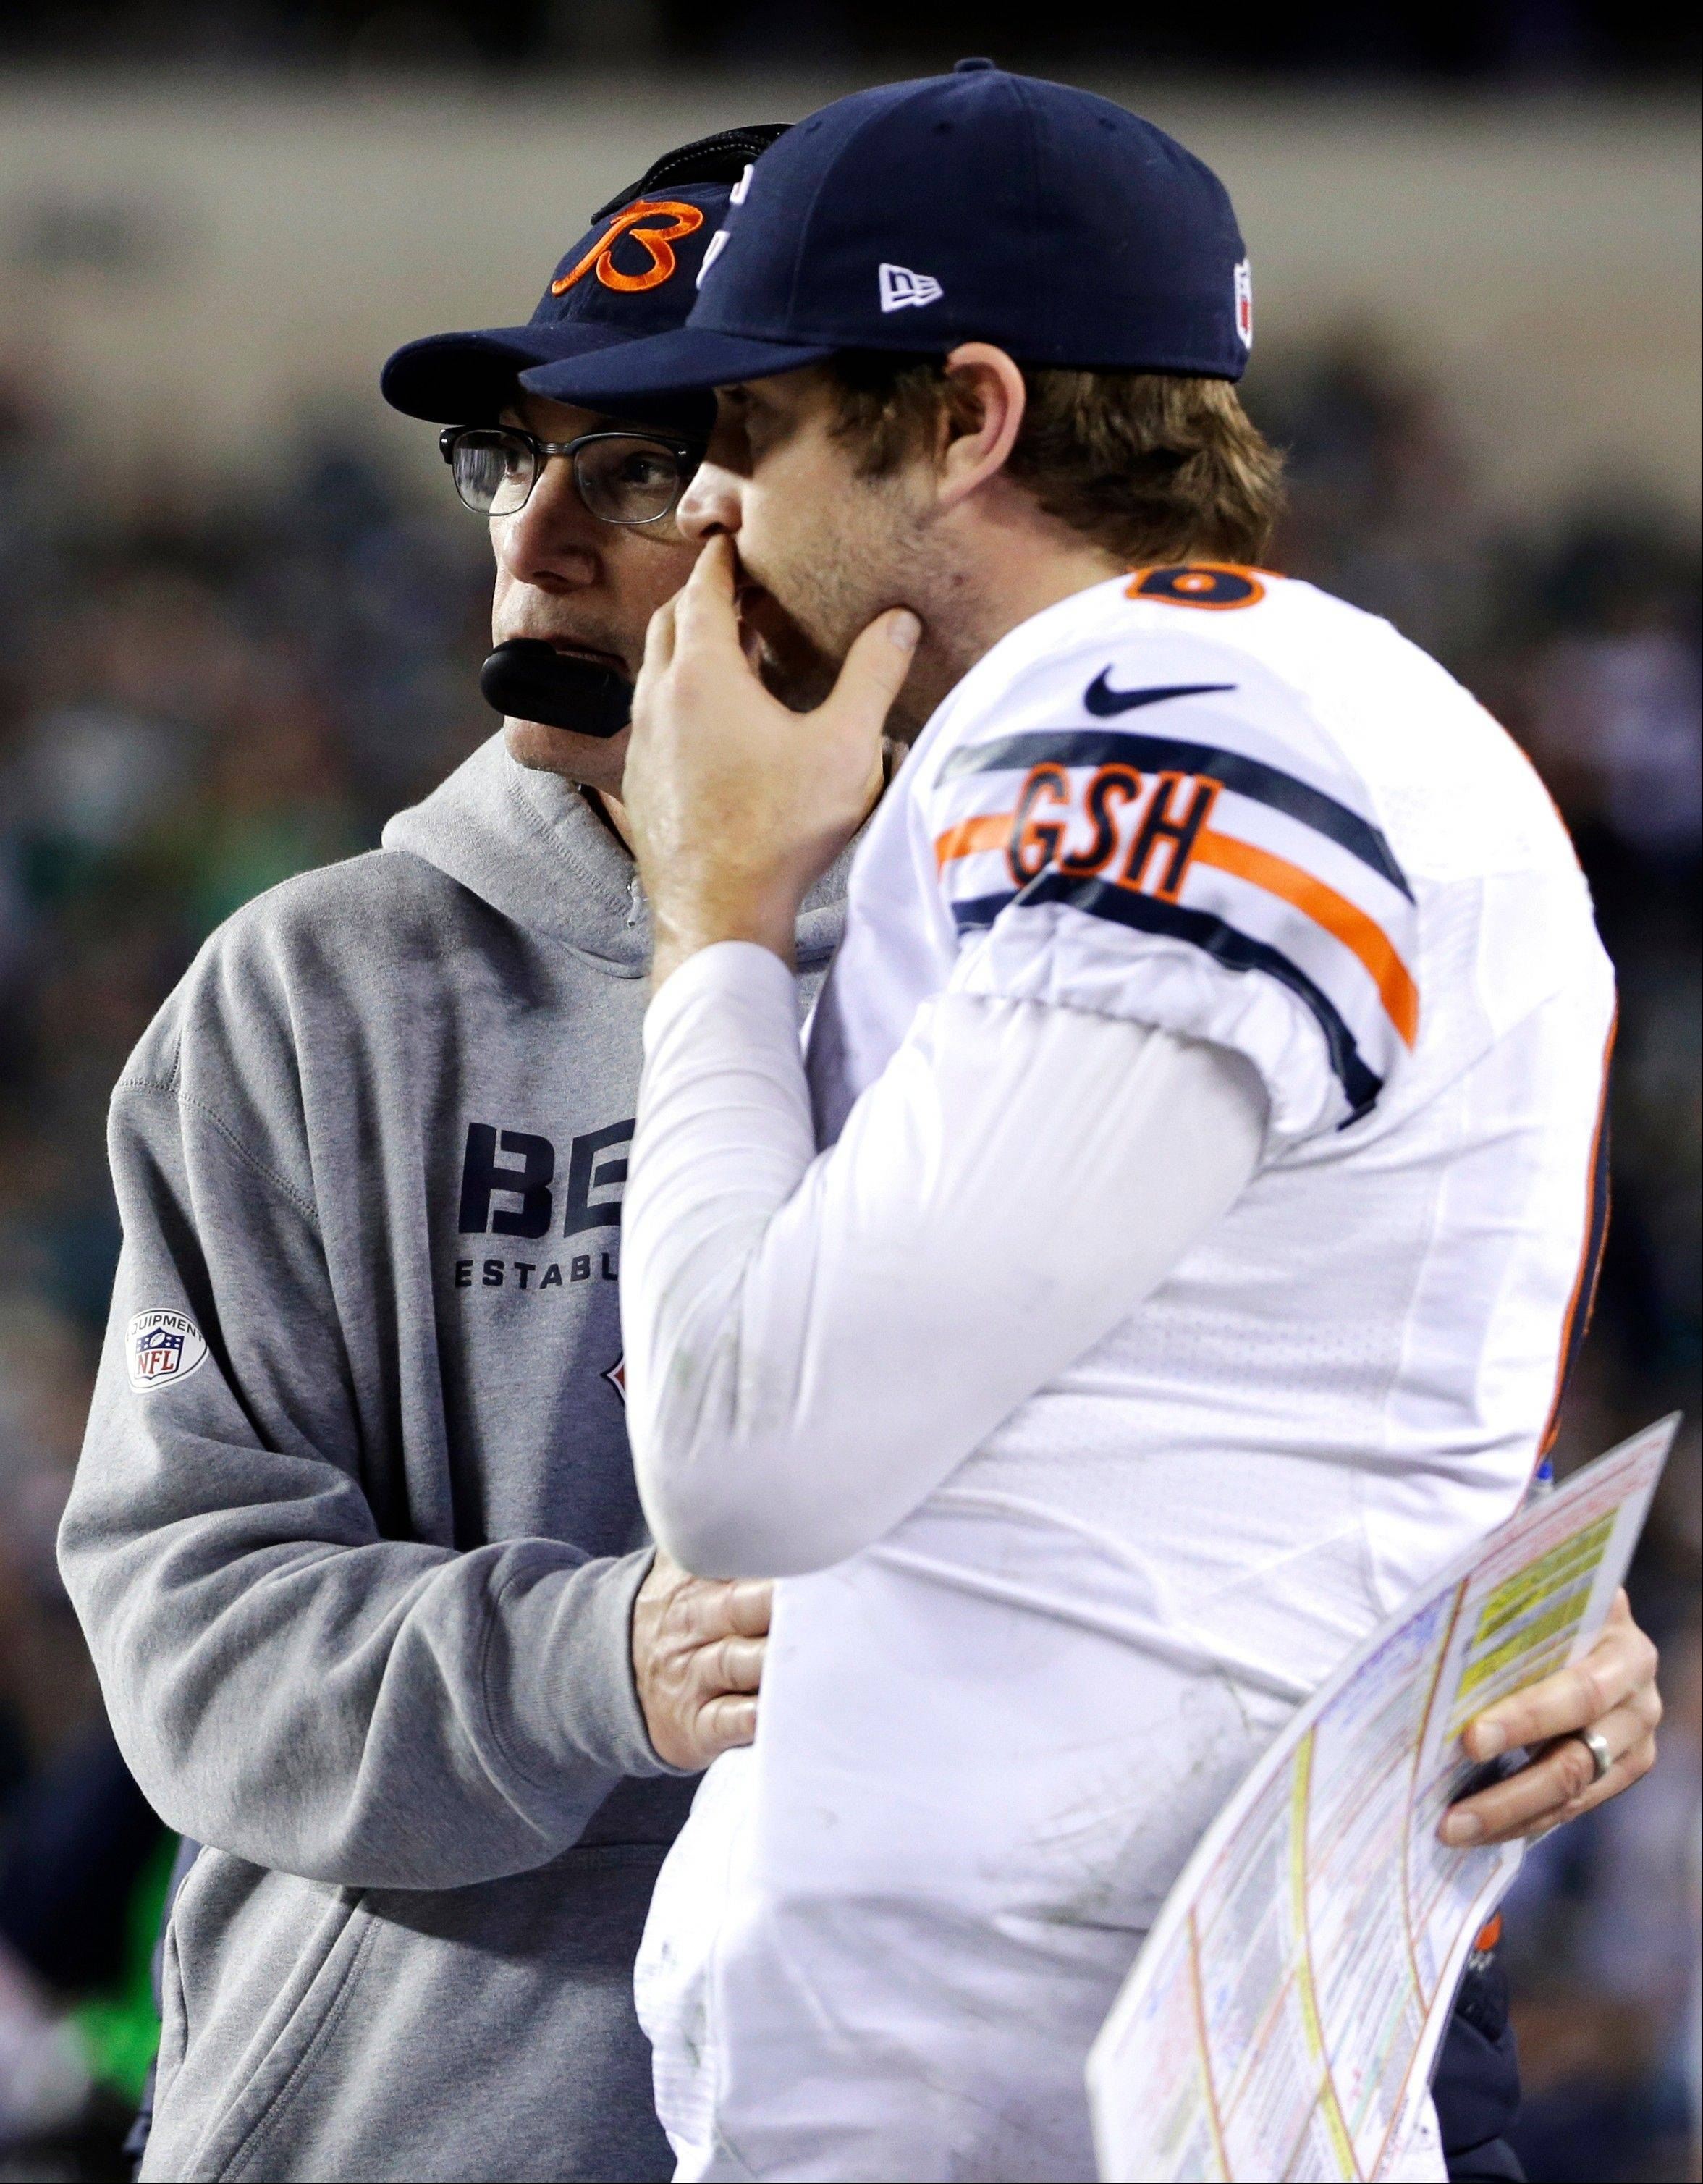 Bears head coach Marc Trestman, left, embraces Jay Cutler on the sidelines during the second half of an NFL football game Sunday in Philadelphia. The Bears lost 54-11 to set up a playoff contest in next week's game against the Packers at Soldier Field.